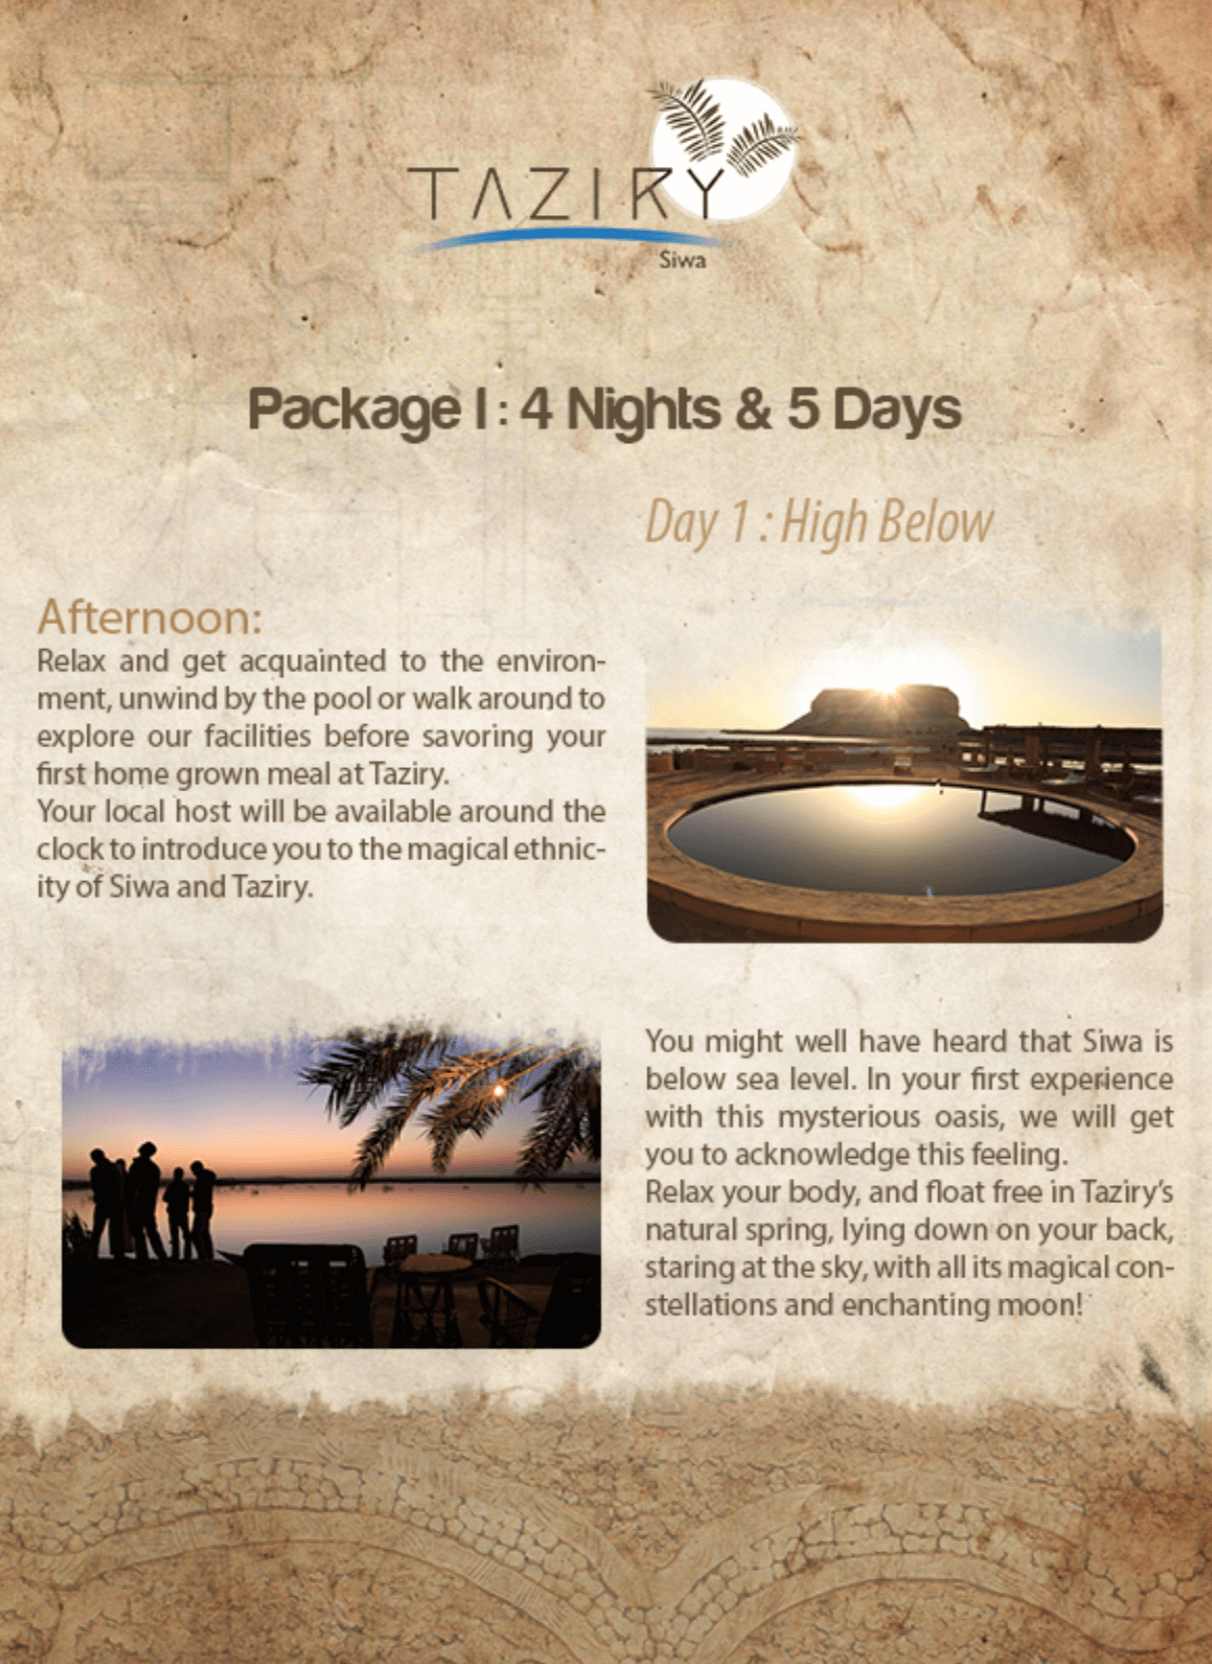 Taziry Ecolodge Activities (4 Nights Program)